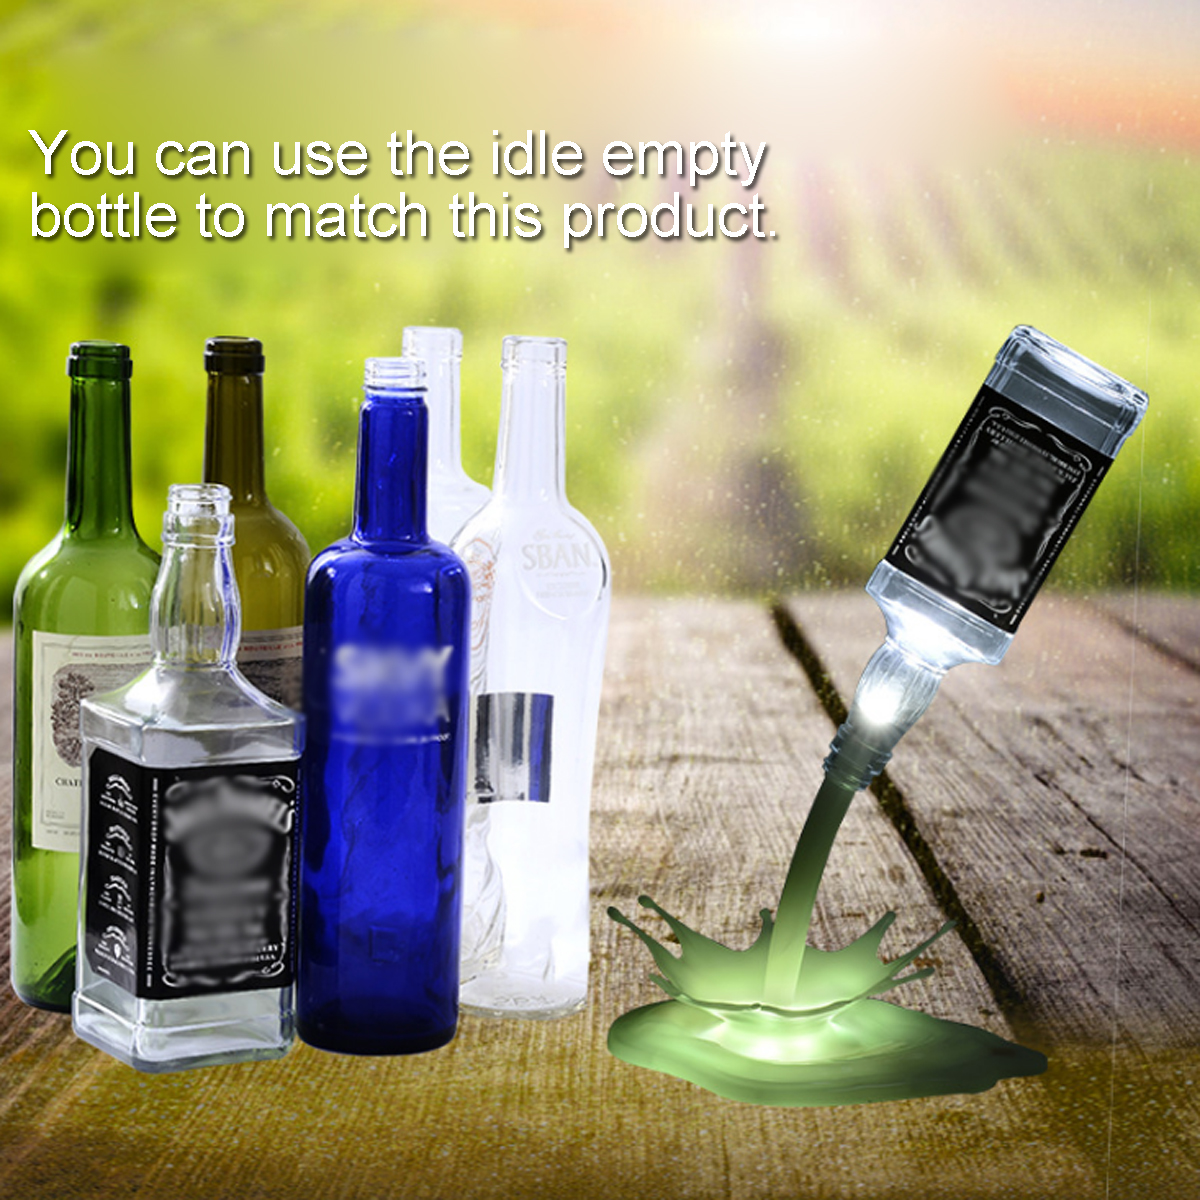 3D USB LED Lamp Pouring Bottle Lamp Night light Table Desk Touch Control